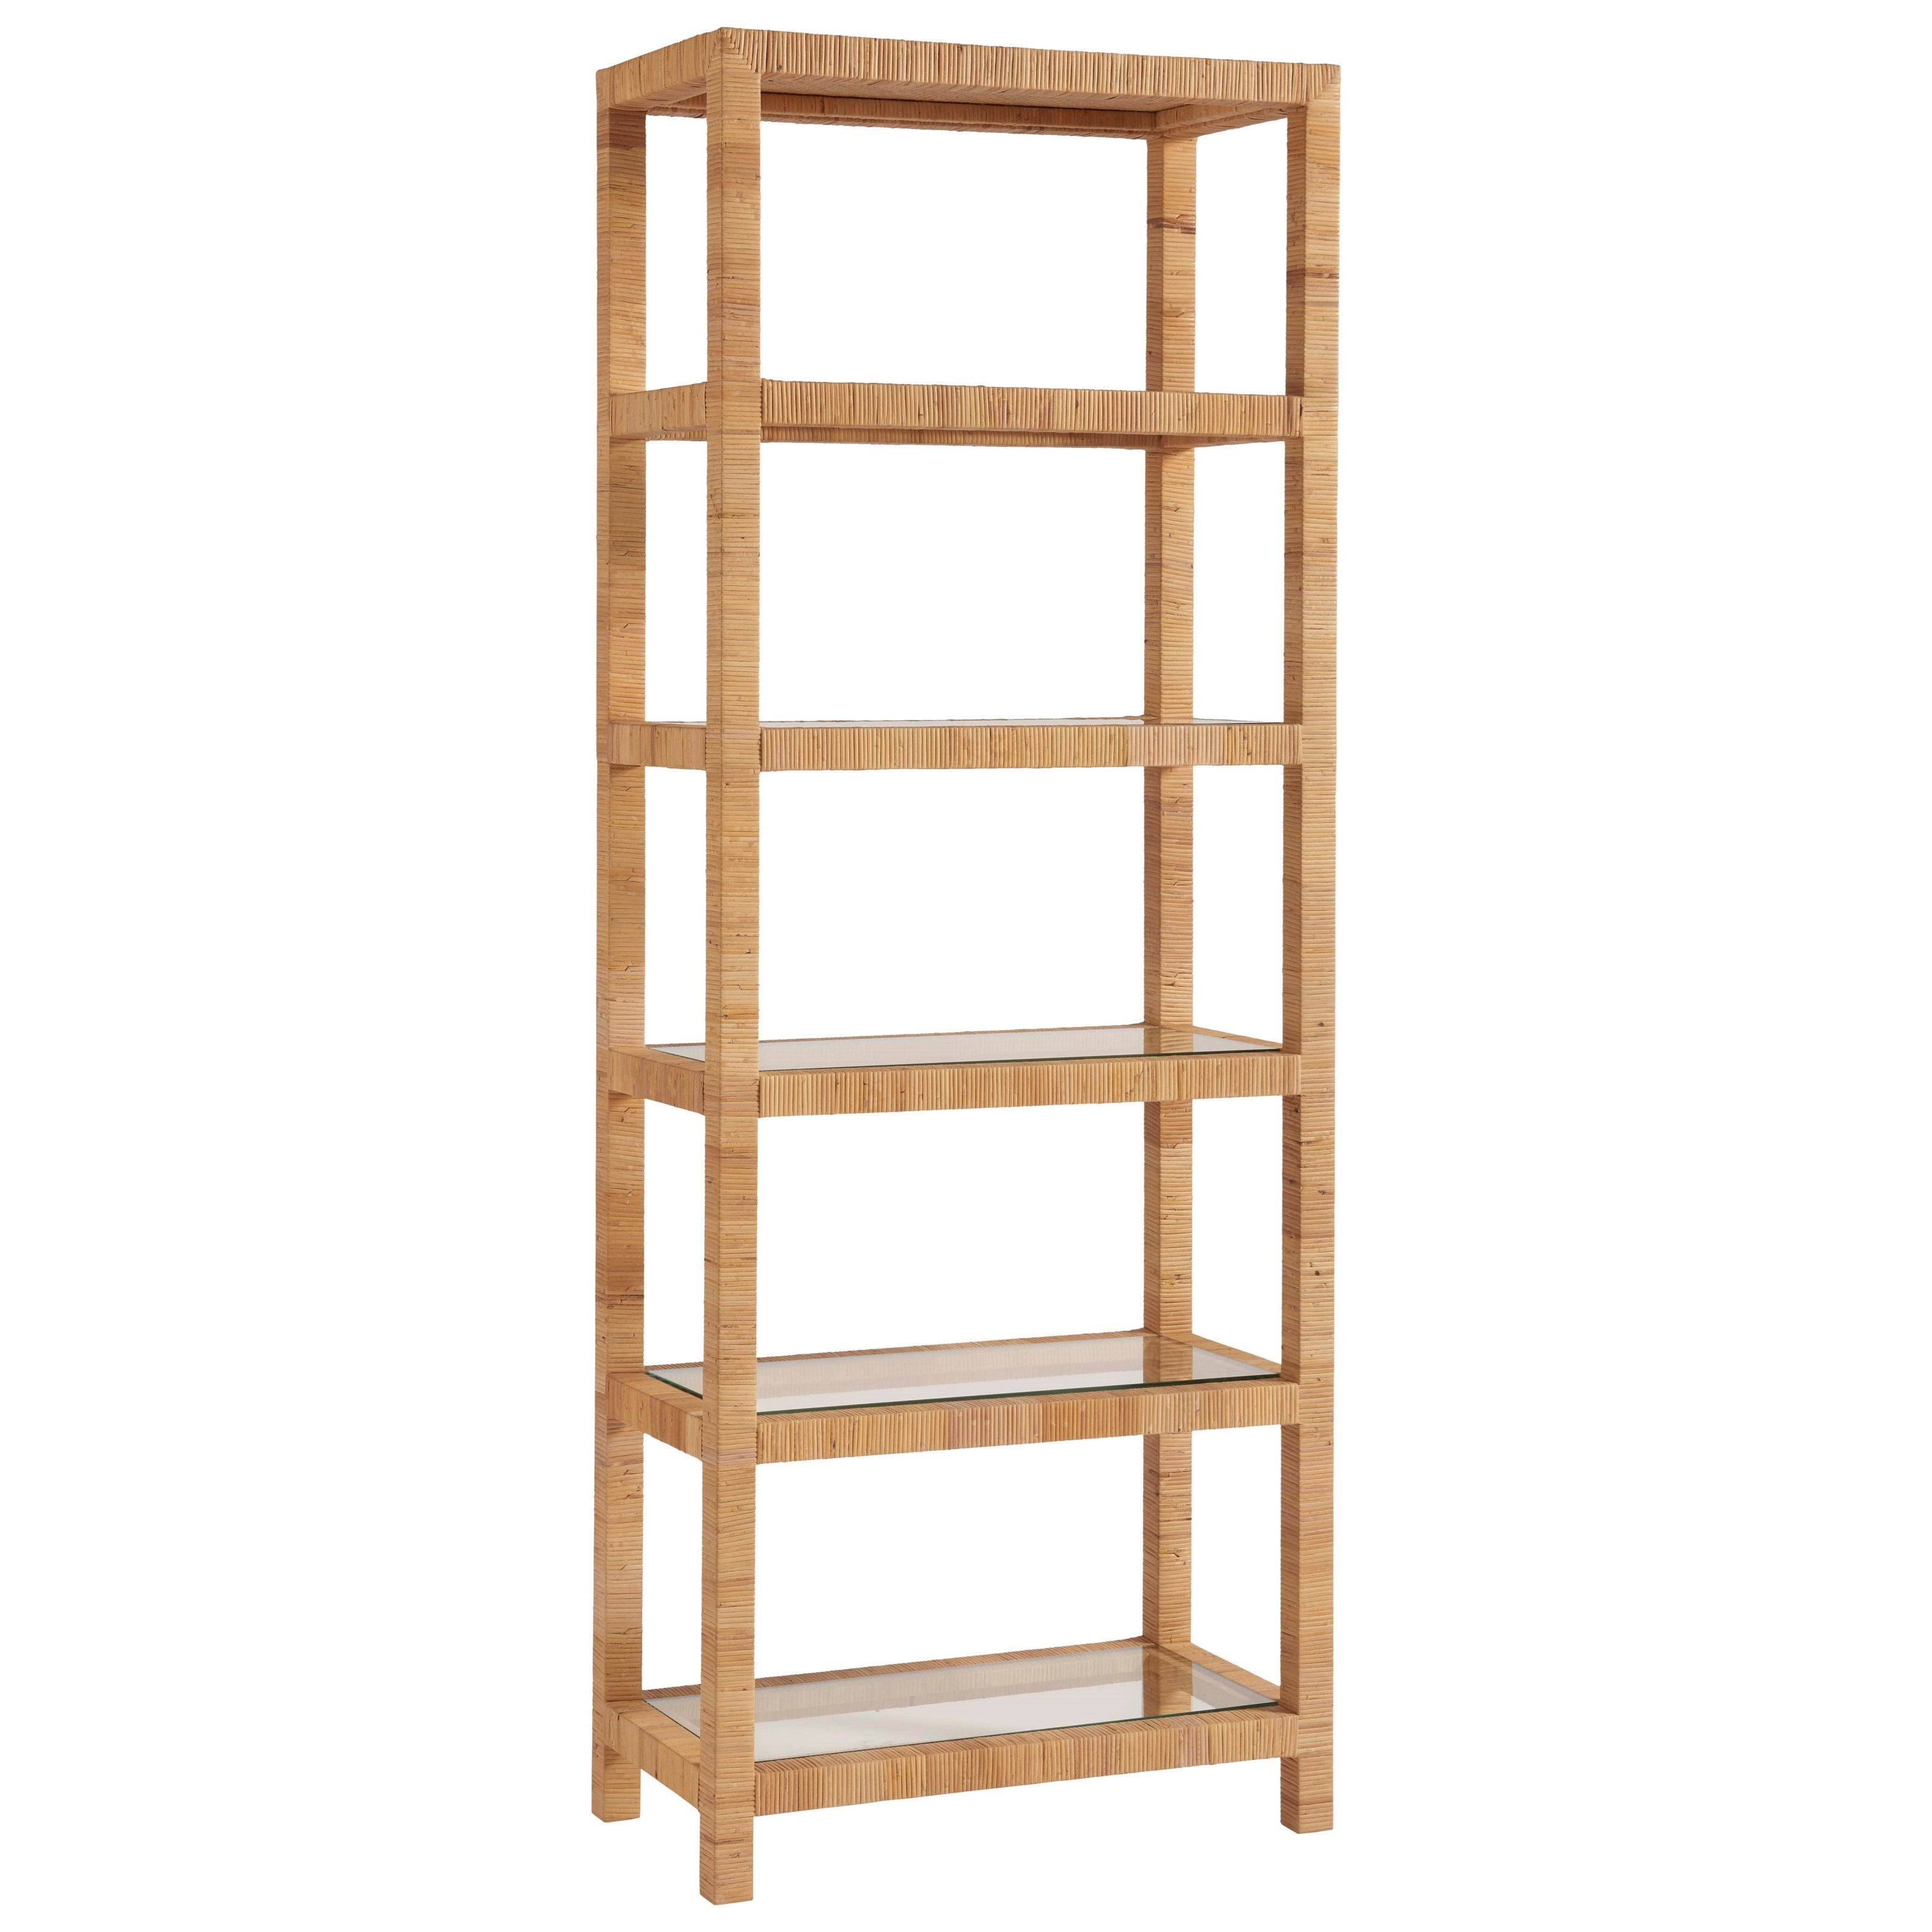 Coastal Living Home - Escape Long Key Etagere by Universal at Baer's Furniture